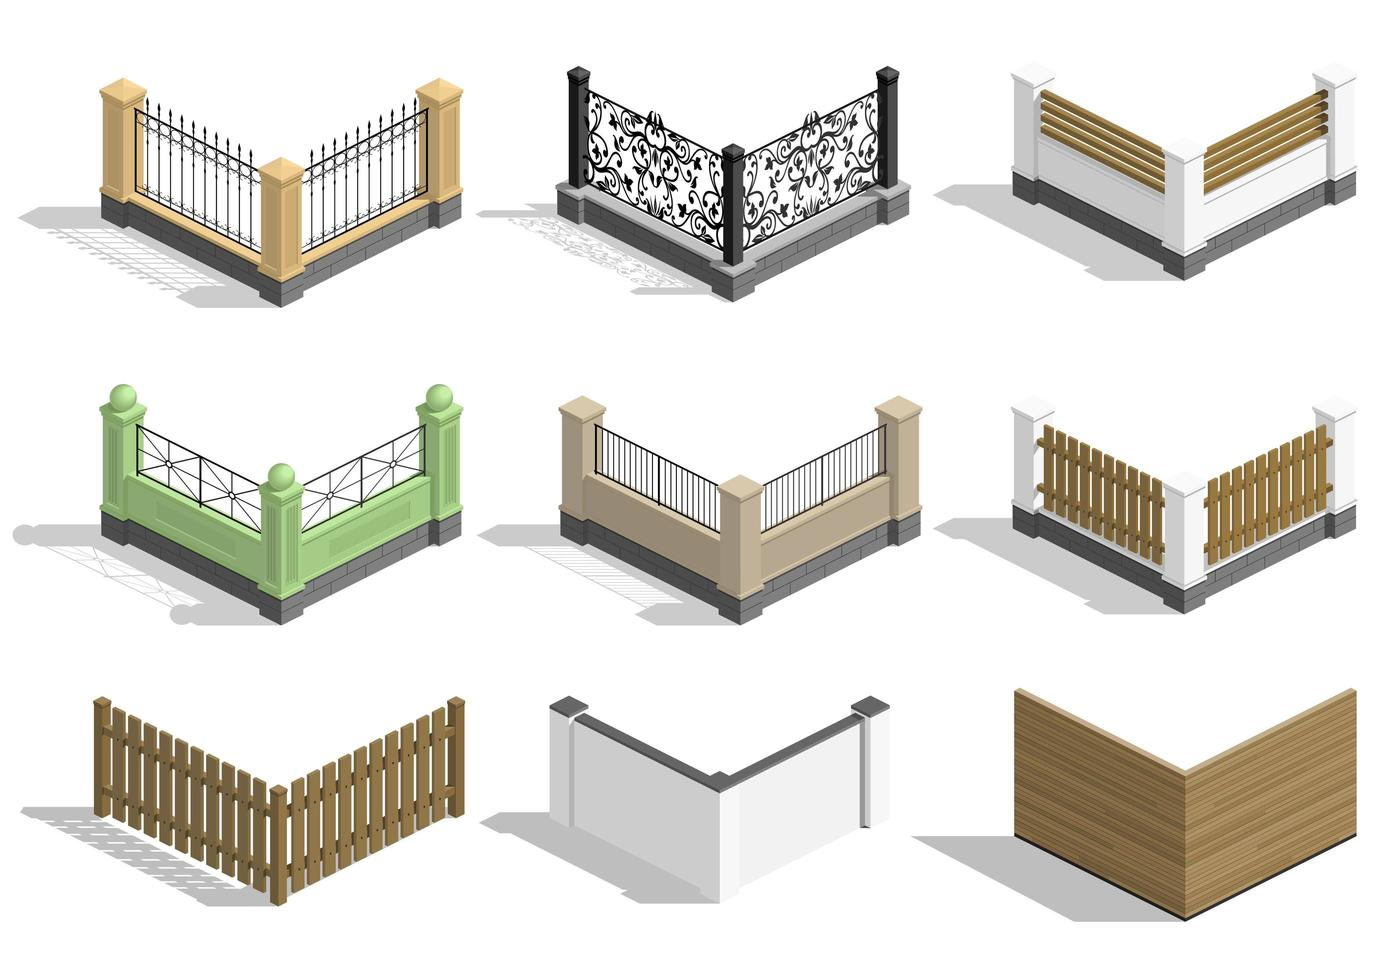 Set of different style sections of fence vector